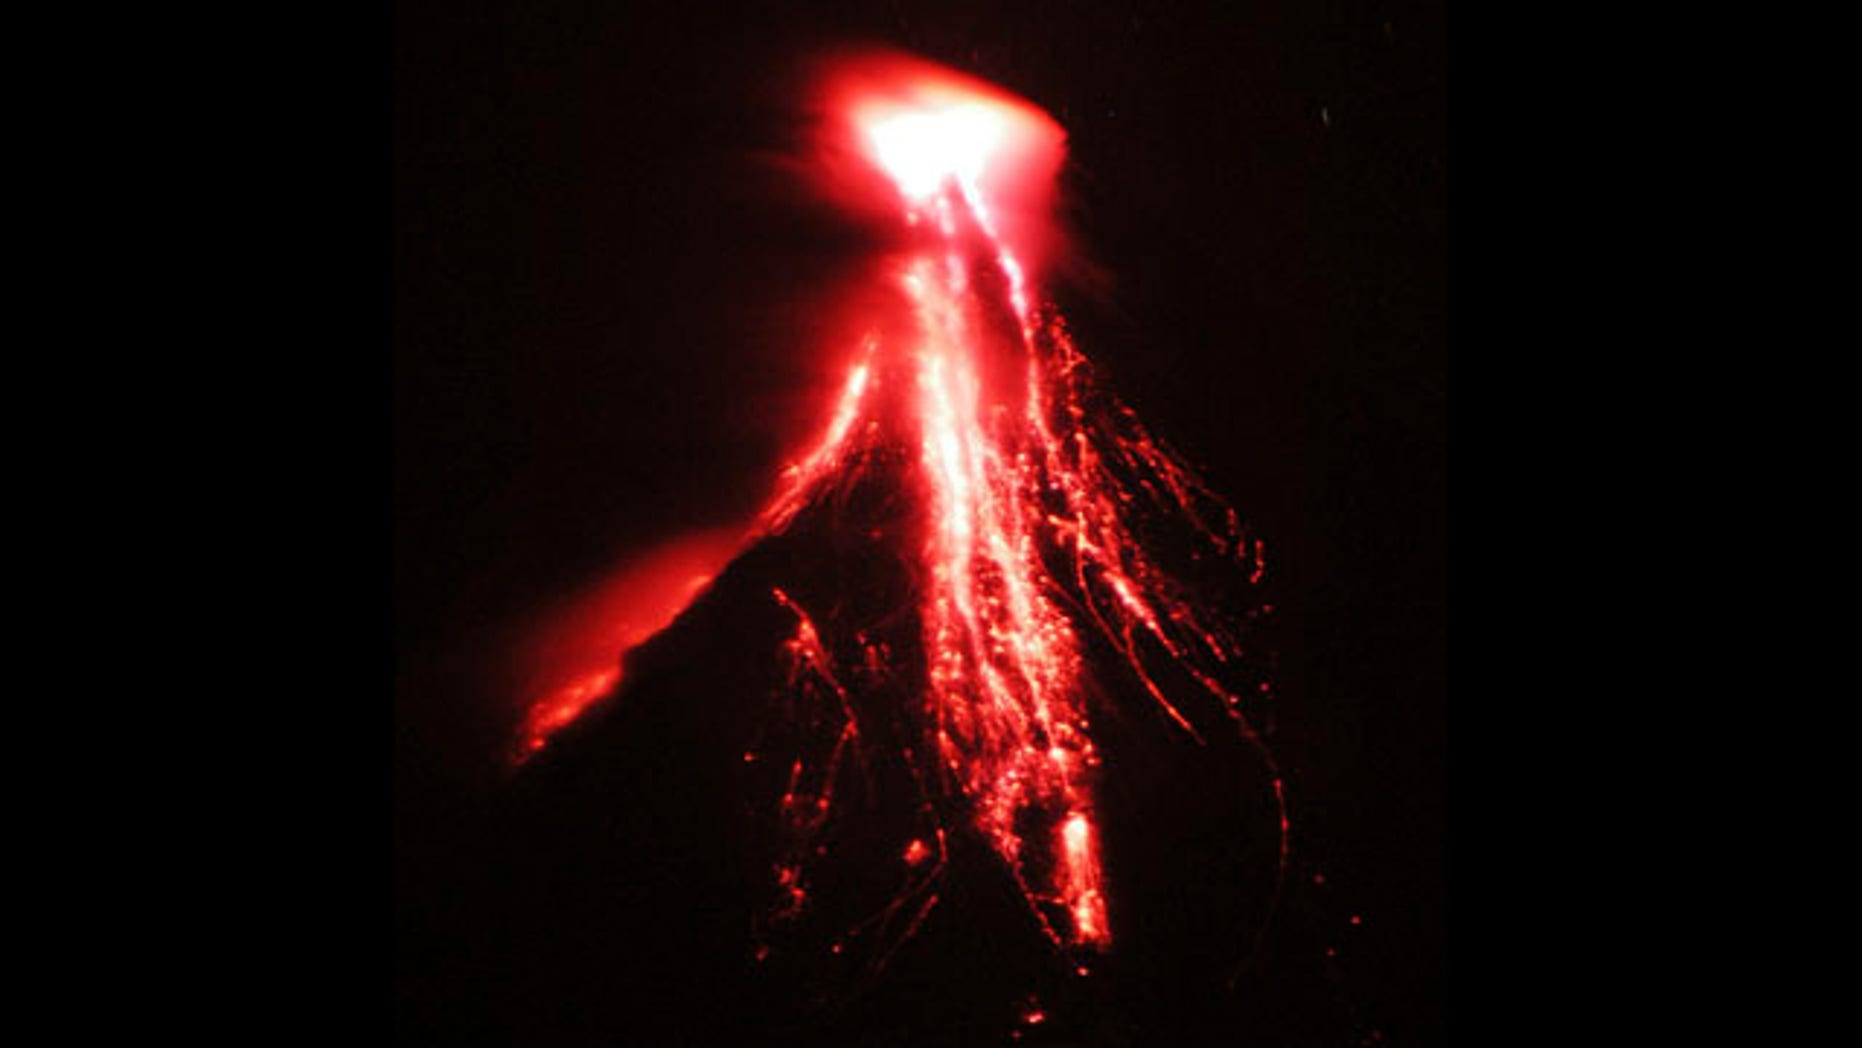 Lava cascades down the slopes of Mayon volcano in Legazpi city, Albay province, Monday Dec. 14, 2009, about 310 miles south of Manila. The Philippine Institute of Volcanology and Seismology, PHIVOLCS, has raised the five-alert level to three following increased activity of the country's most active volcano and residents are prohibited from venturing into the 4-mile permanent danger zone.